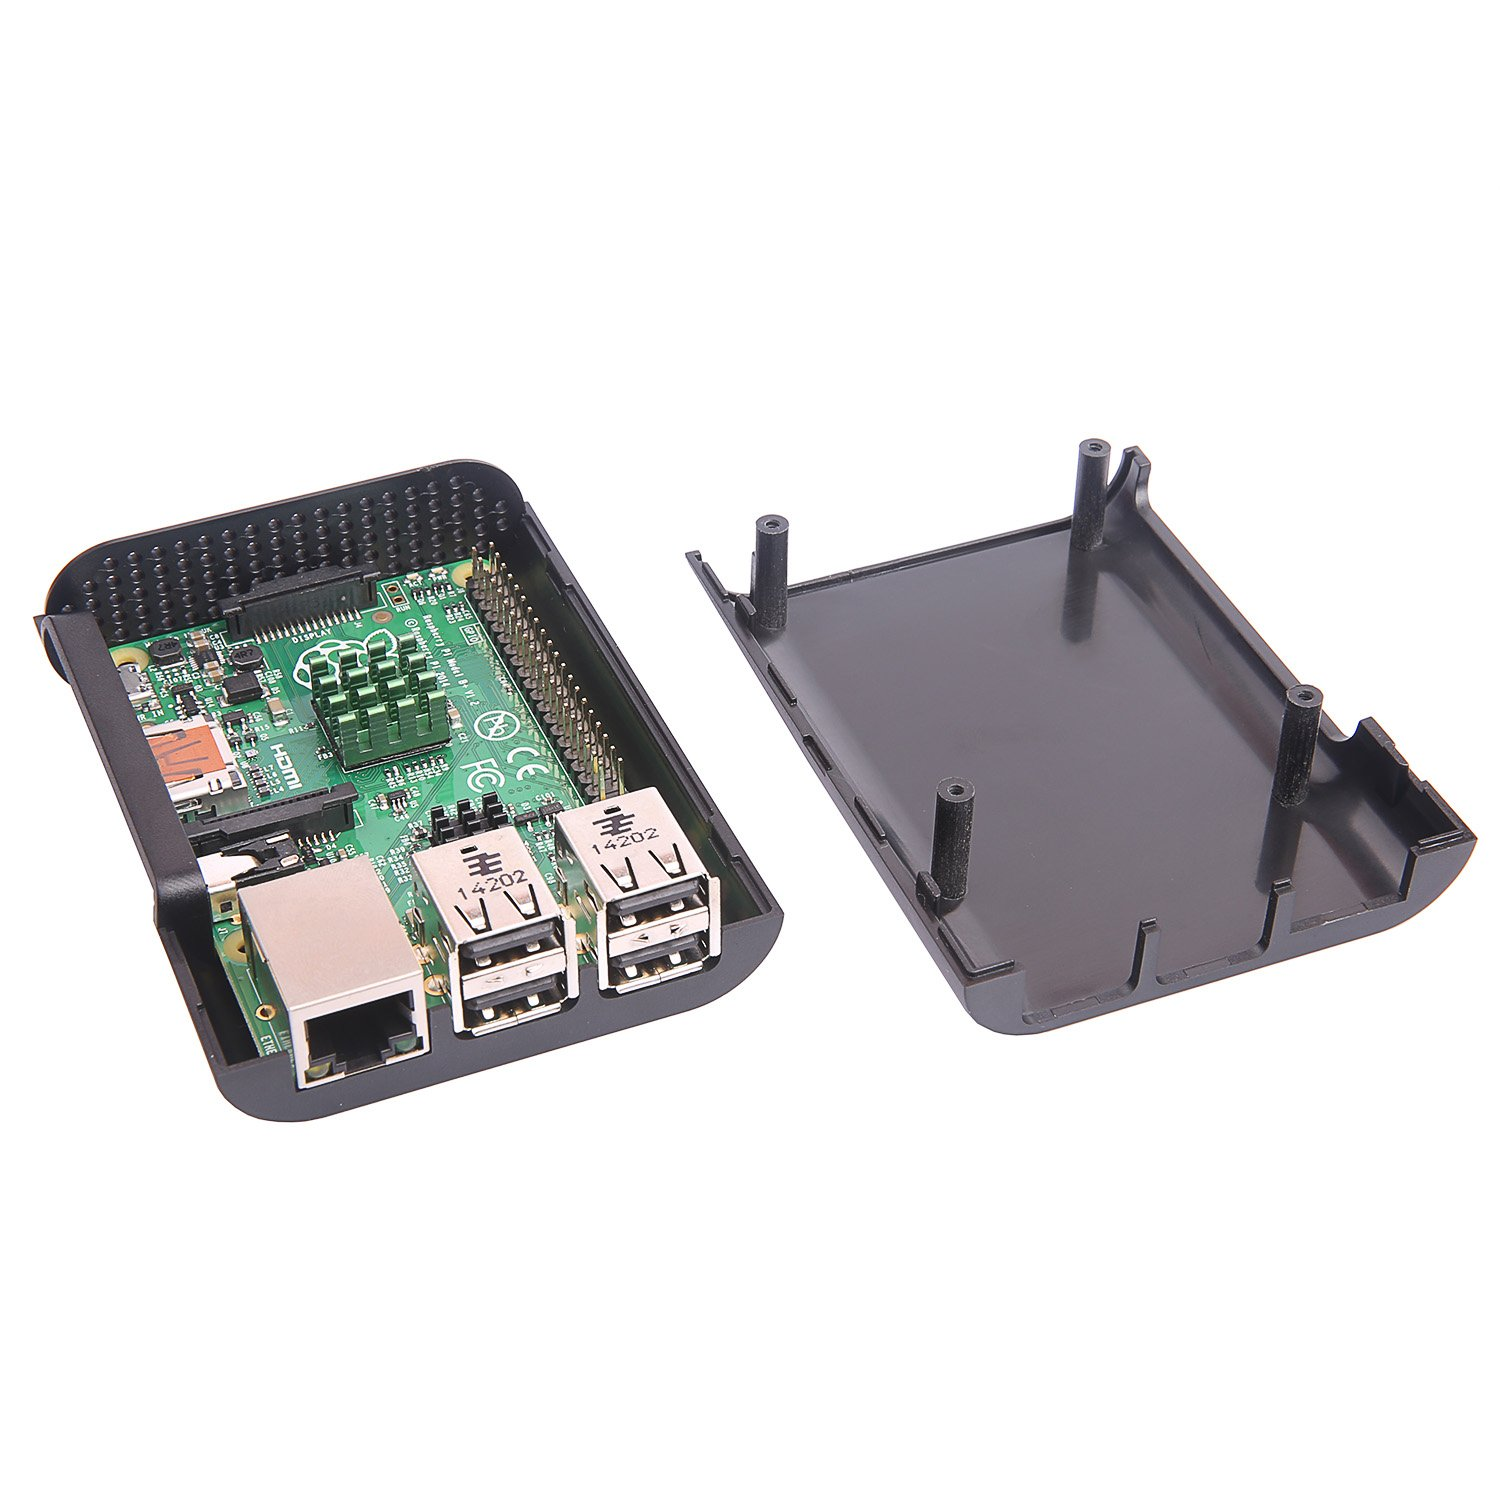 JBtek Jet Black Case for Raspberry Pi 3 Model B & Raspberry Pi 2 Model B - Access to All Ports